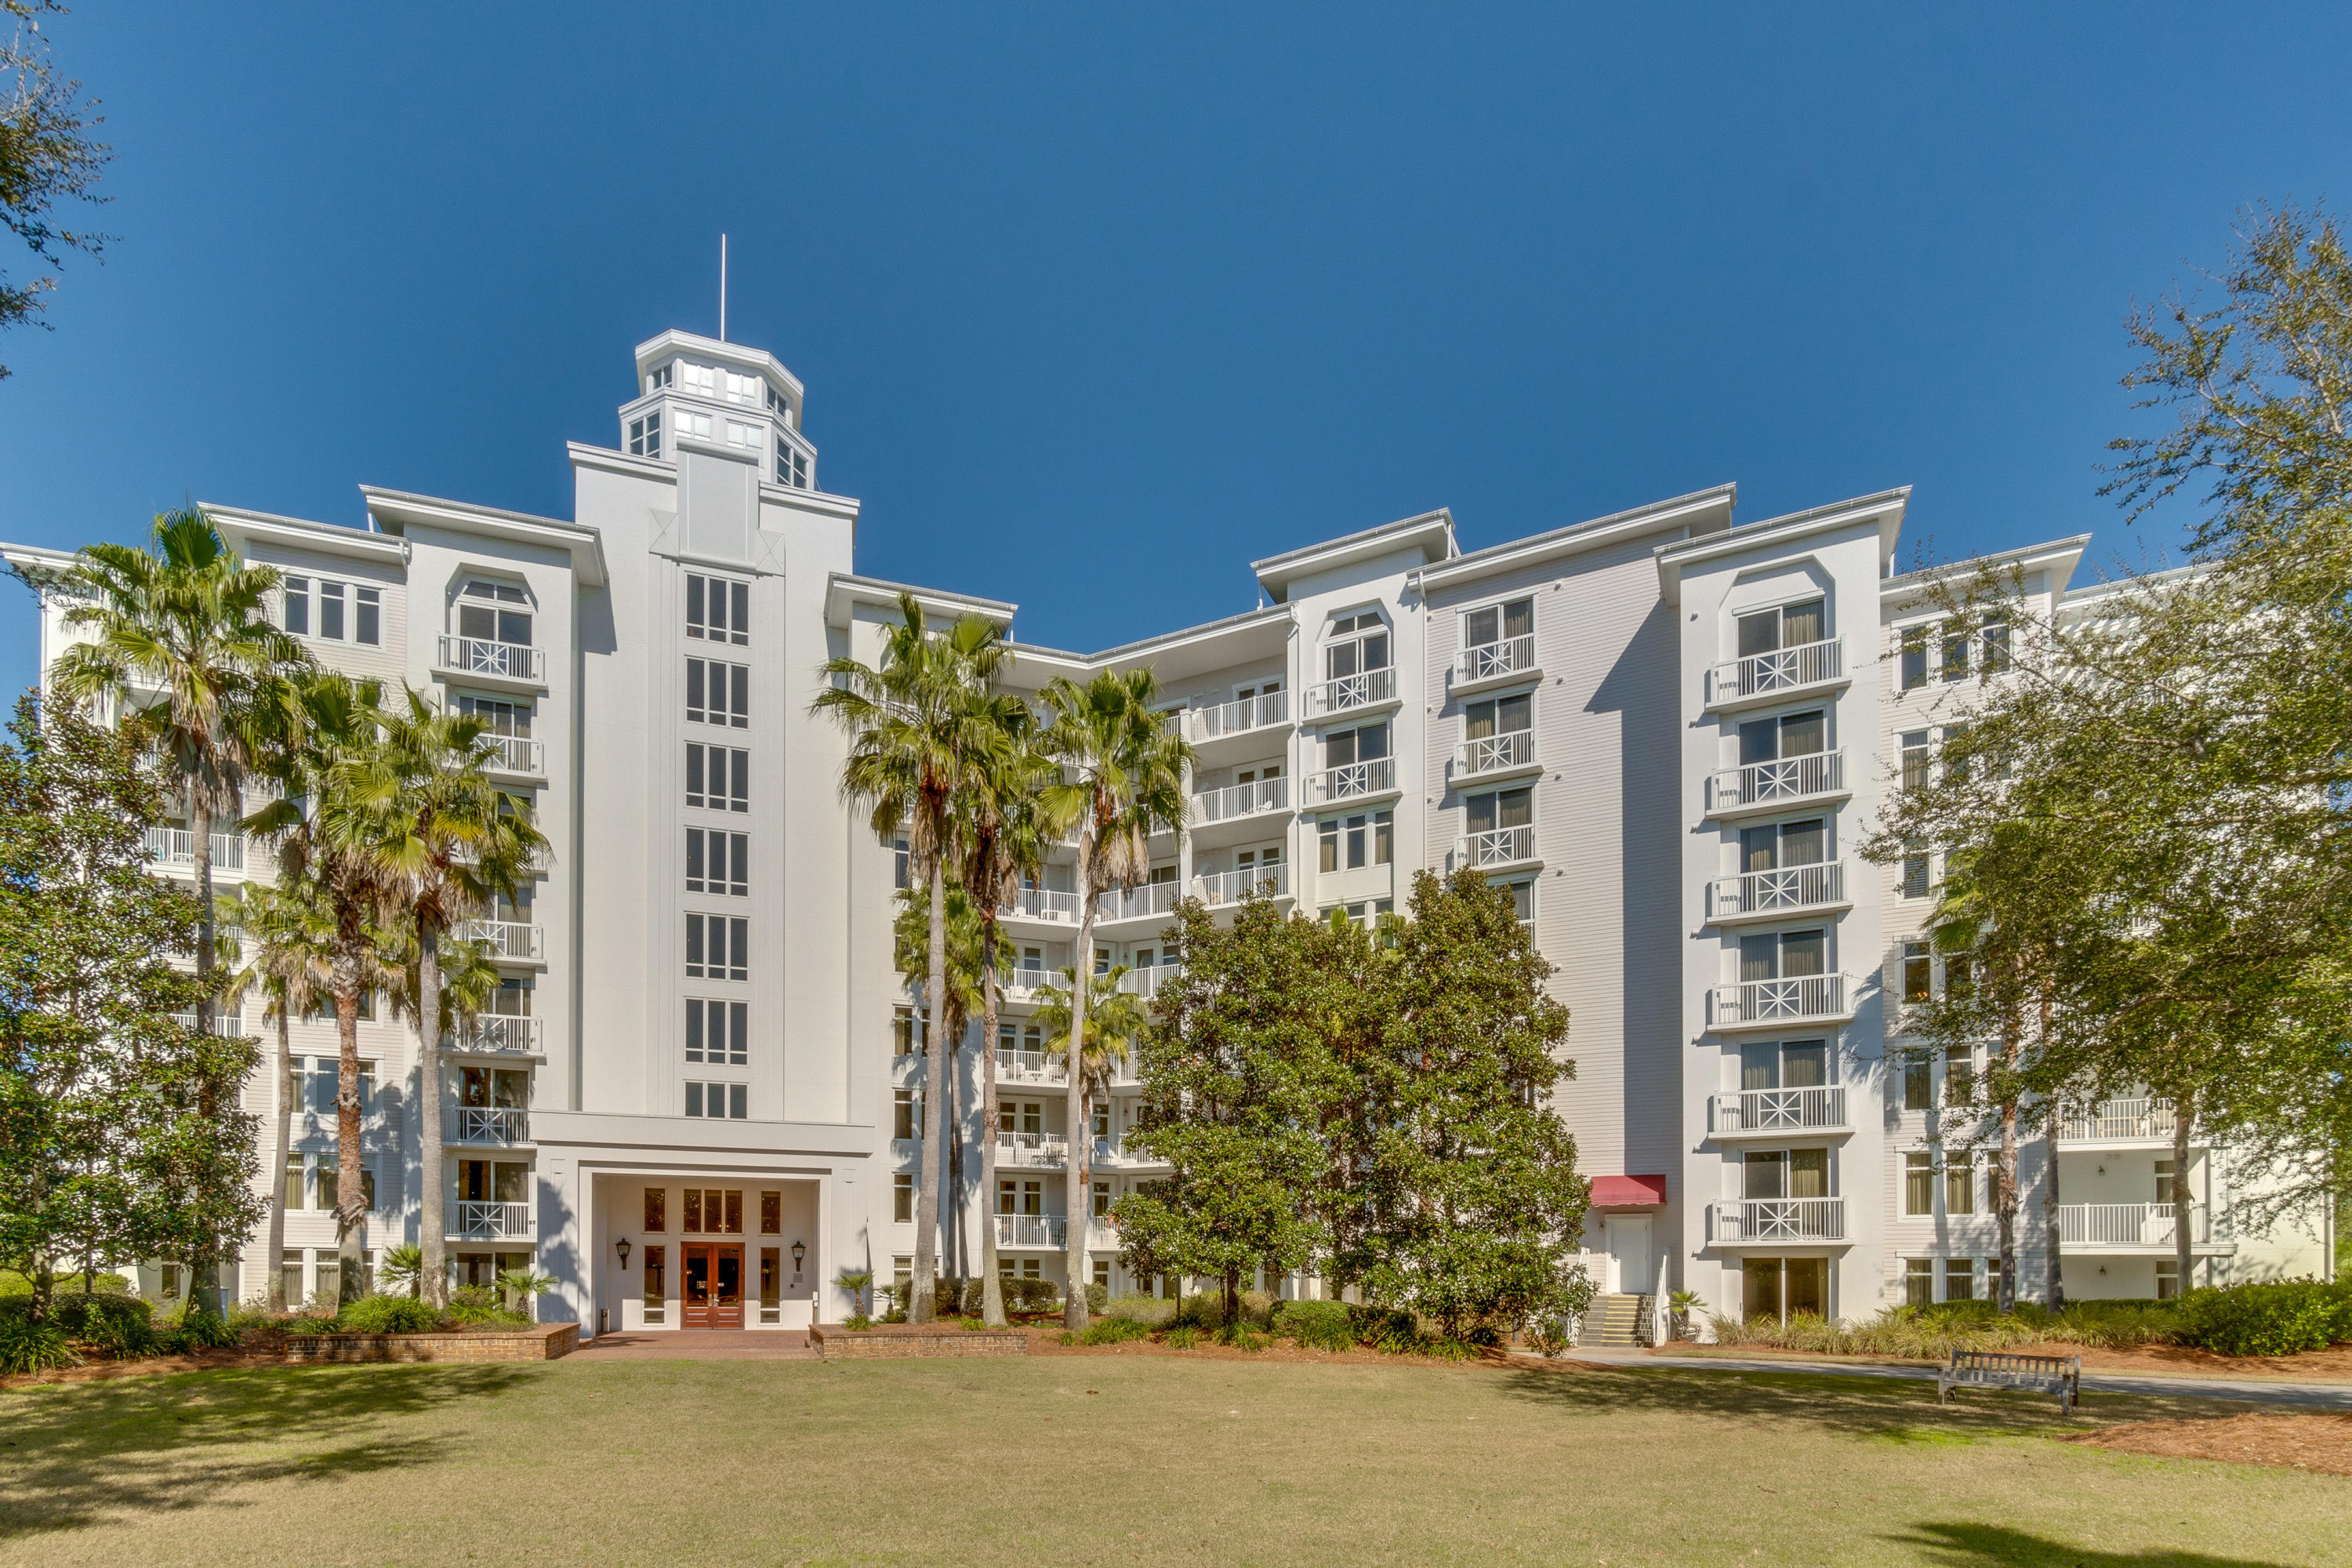 """A-rated on Sandestin Rental on the 4th floor with a Juliette balcony overlooking the lovely Grand Gardens. Enjoy recent improvements including a new HVAC air handler-2016, new queen sleeper sofa-2017, new side tables, coffee table, & tv stand -2018, new paint-2014, and new carpet-2013. This resort condo is being sold fully furnished and rental ready. The laundry facility is conveniently located on the same floor. Elation is located adjacent to the fabulous shopping, formal and informal dining and night life hot spots in the pedestrian Village of Baytowne Wharf. Owners also have access to the private Solstice Club, an amenity for owners and their guests, featuring grills, screened porch with gas fireplace, indoor bar, flat screen TV and comfortable seating inside and out. As an introduction to the Sandestin lifestyle, we invite our new owners to explore amenities that make Sandestin special. The listing brokerage and seller(s) are presenting the buyer(s) of this property with (2) 90-minute rounds of Tennis court time, a golf foursome at one of our three championship courses, a round of golf for up to four (4) players and an invitation to """"Club Night"""" at the unrivaled Burnt Pine Golf Club.  Sandestin Golf and Beach Resort is a major destination for all seasons and all ages, and has been named the #1 resort on Florida's Emerald Coast. This magical resort spanning over 2,000 acres is comprised of over 70 unique neighborhoods of condominiums, villas, town homes, and estates. The resort features miles of sandy white beaches and pristine bay front, four championship golf courses, a world-class tennis center with 15 courts, 4 resort swimming pools (and 15 private neighborhood pools), a 123-slip marina, a fully equipped and professionally staffed fitness center and spa, meeting spaces and The Village of Baytowne Wharf, a charming pedestrian village with events, shopping, dining, family entertainment and nightlife. For true golf cart community living, Grand Boulevard is just """